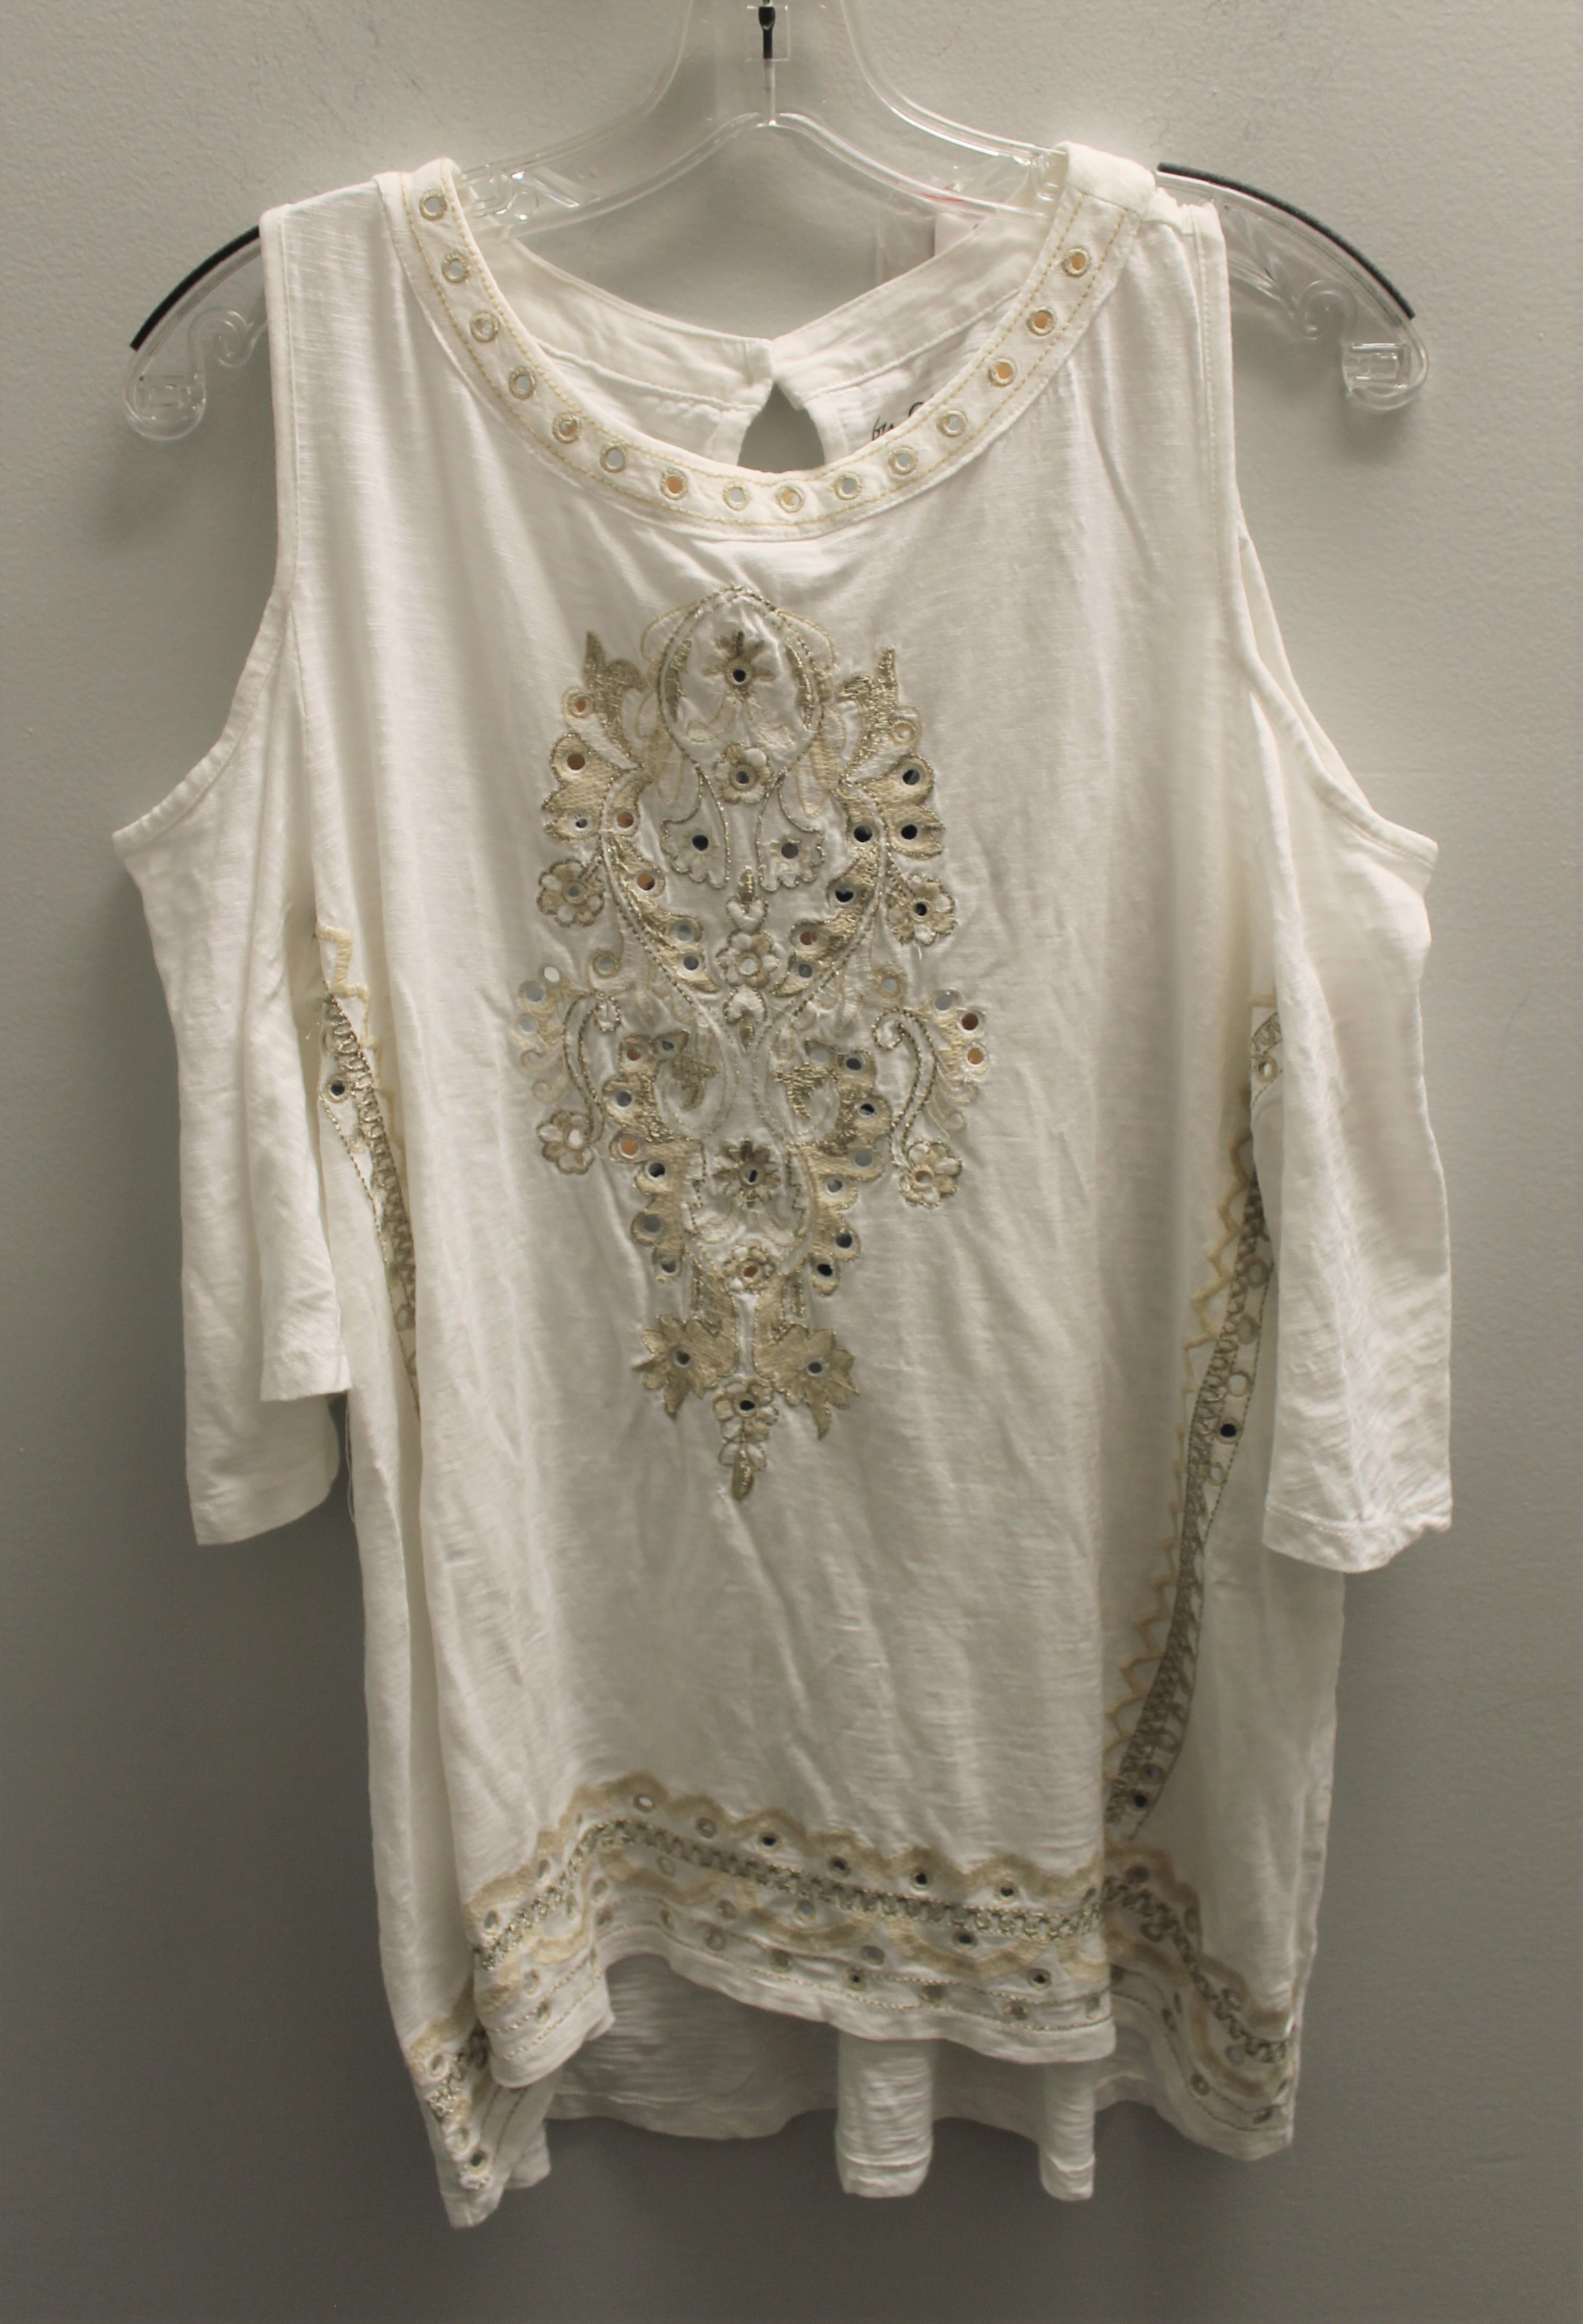 CHICOS-Size-M-white-and-gold-Cotton-Blend-Embroidered-Short-Sleeve-Top_89490A.jpg